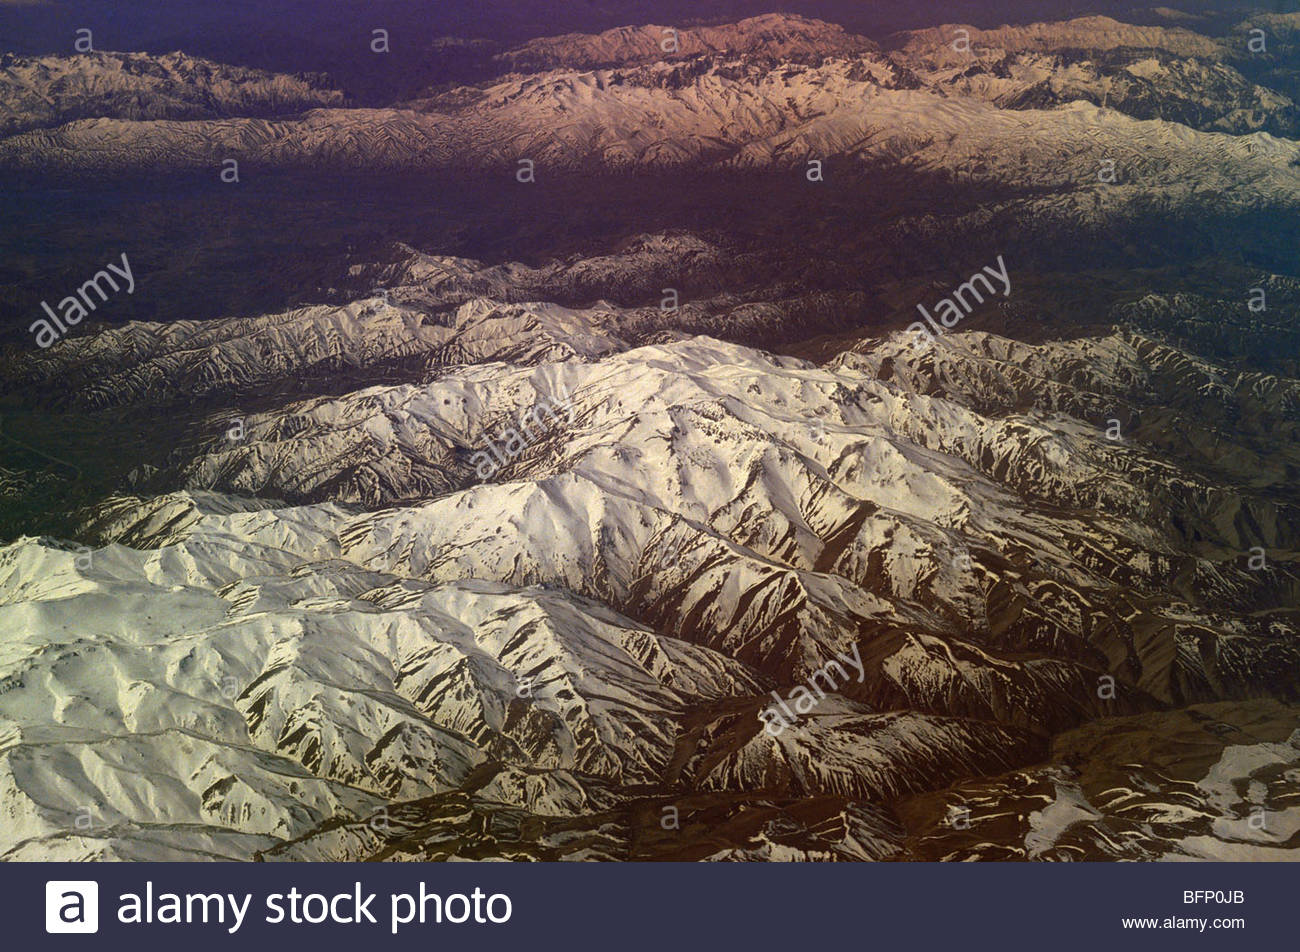 SBA 64334 : Snow capped mountain peaks aerial overflying Iran - Stock Image